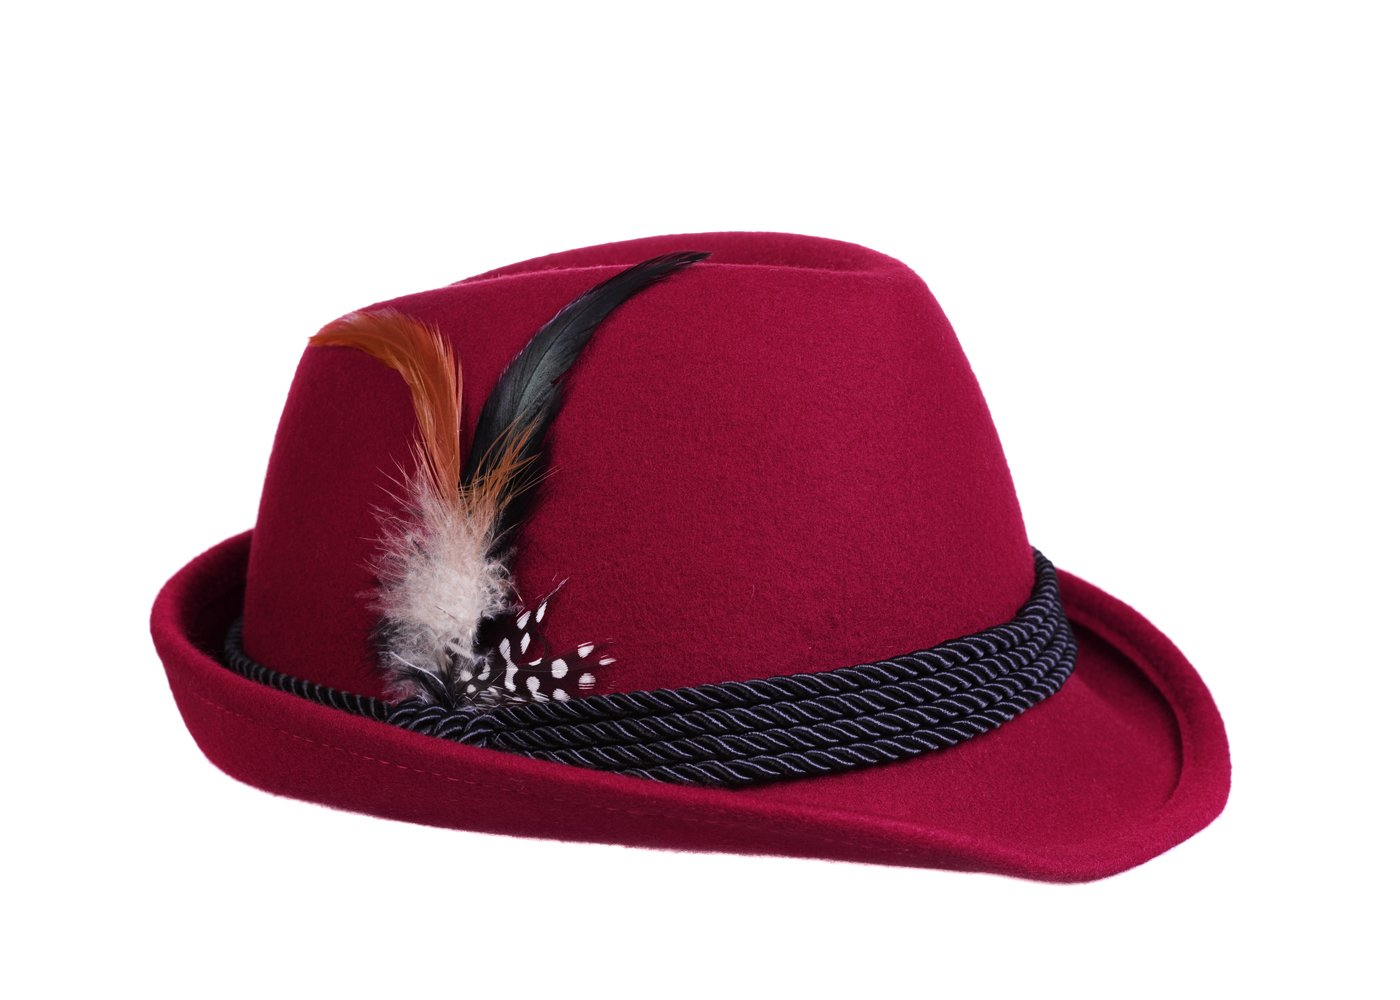 Alpine Holiday Oktoberfest Wool Bavarian Fedora Hat - Red - Size Medium (7 to 7 1/8)